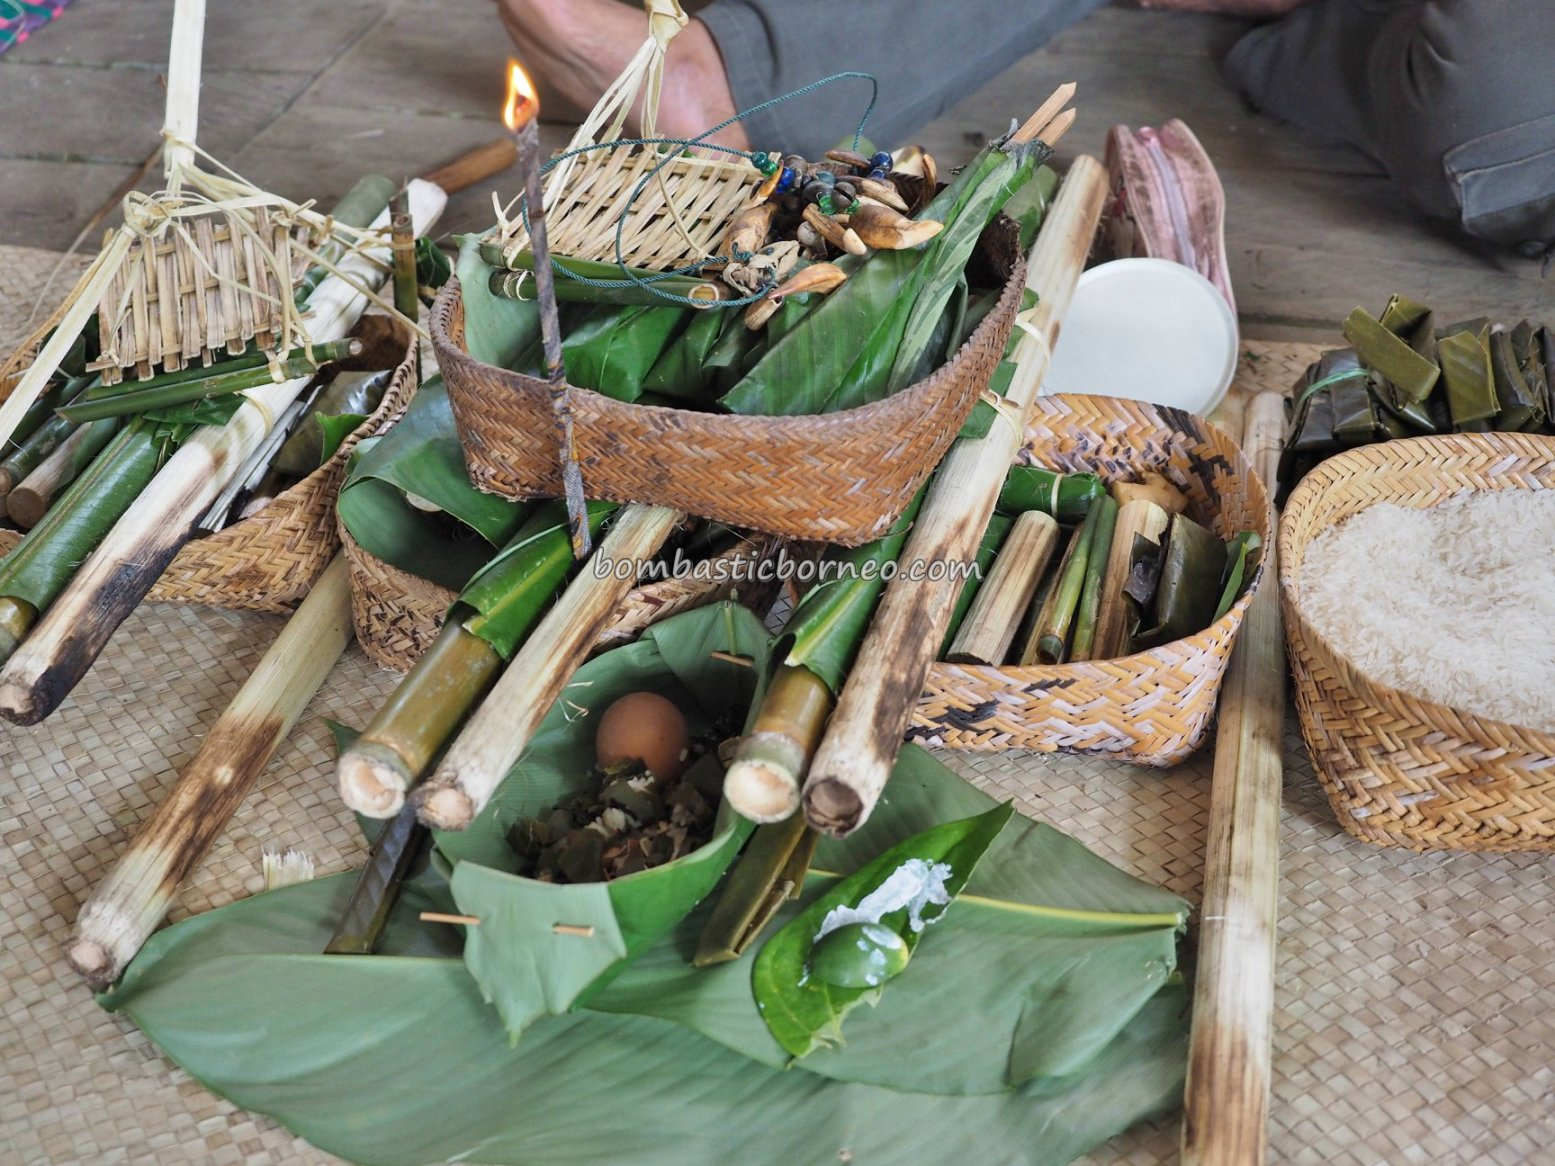 Pesta Batu Siib, Paddy Harvest Festival, authentic, traditional, destination, Borneo, Lundu, Kuching, Malaysia, Dayak Bidayuh, native, ritual, Tourist attraction, travel guide, 砂拉越婆羅洲, 原住民丰收节日